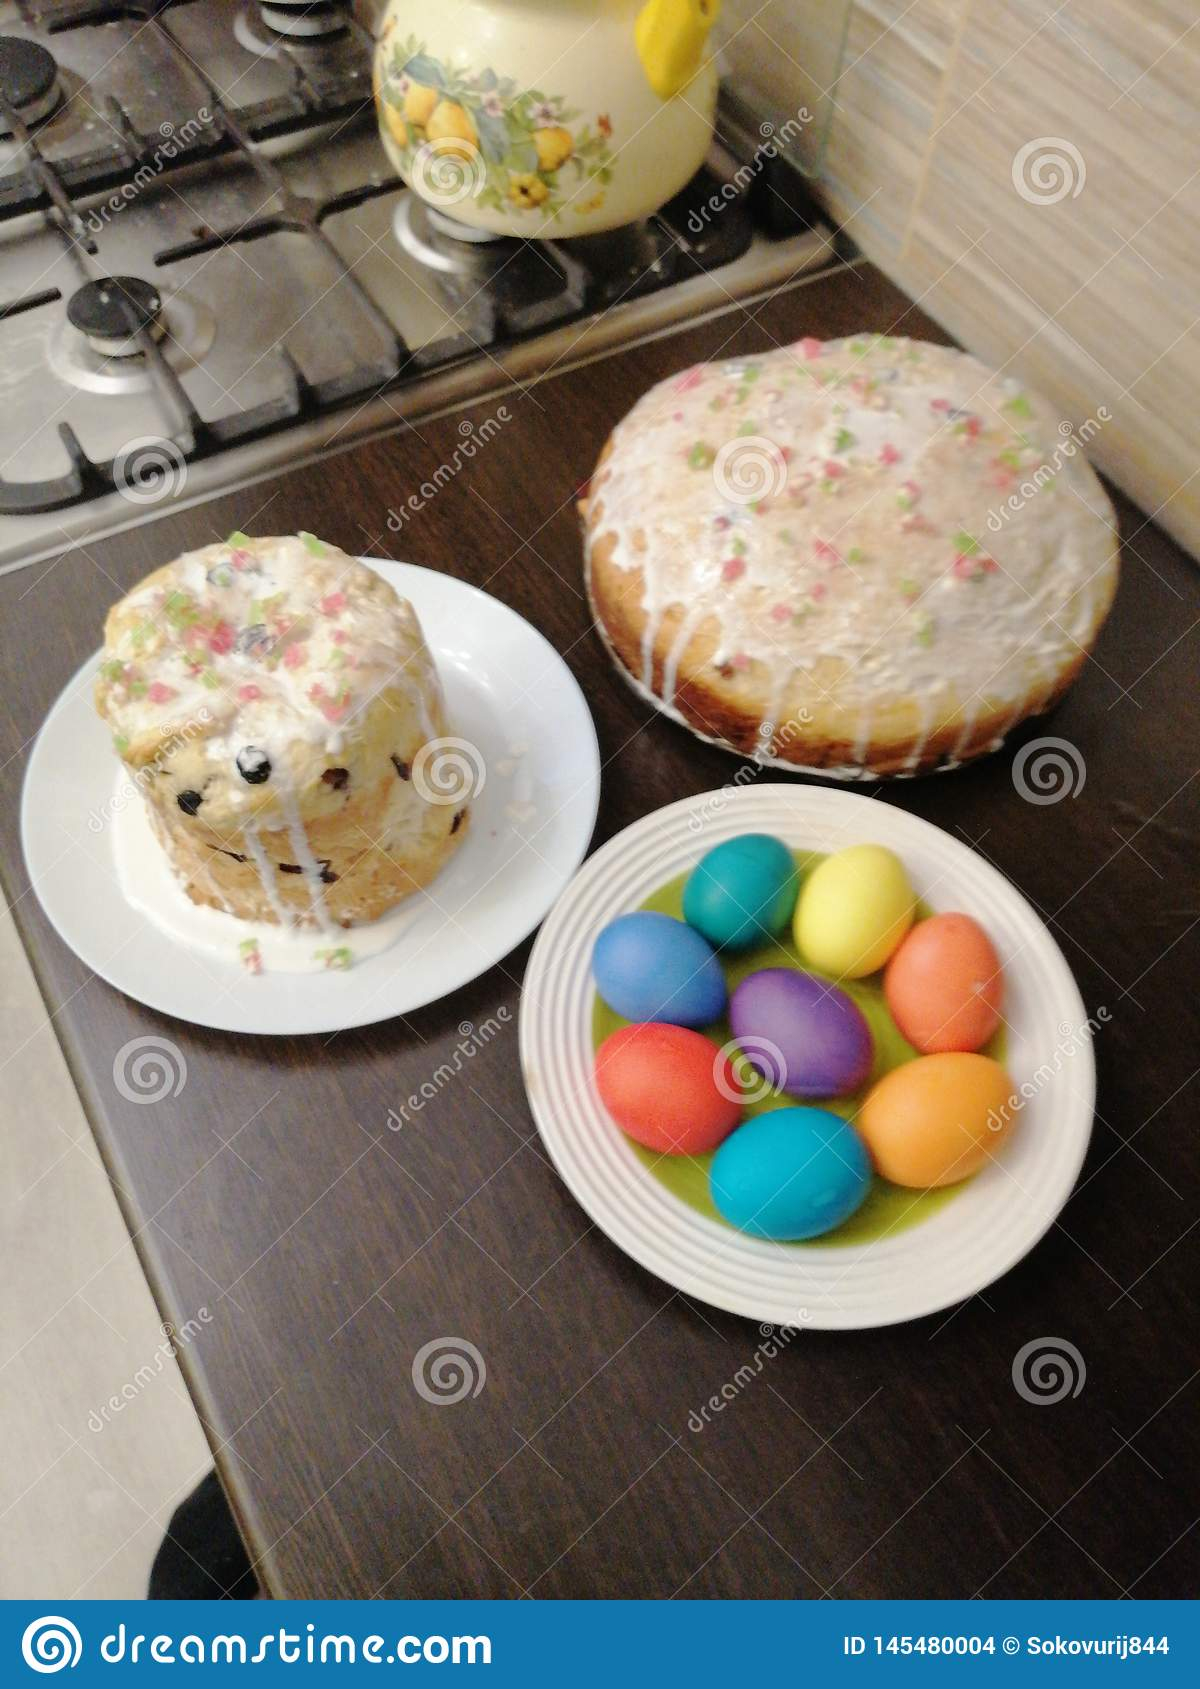 View of pies and Easter eggs